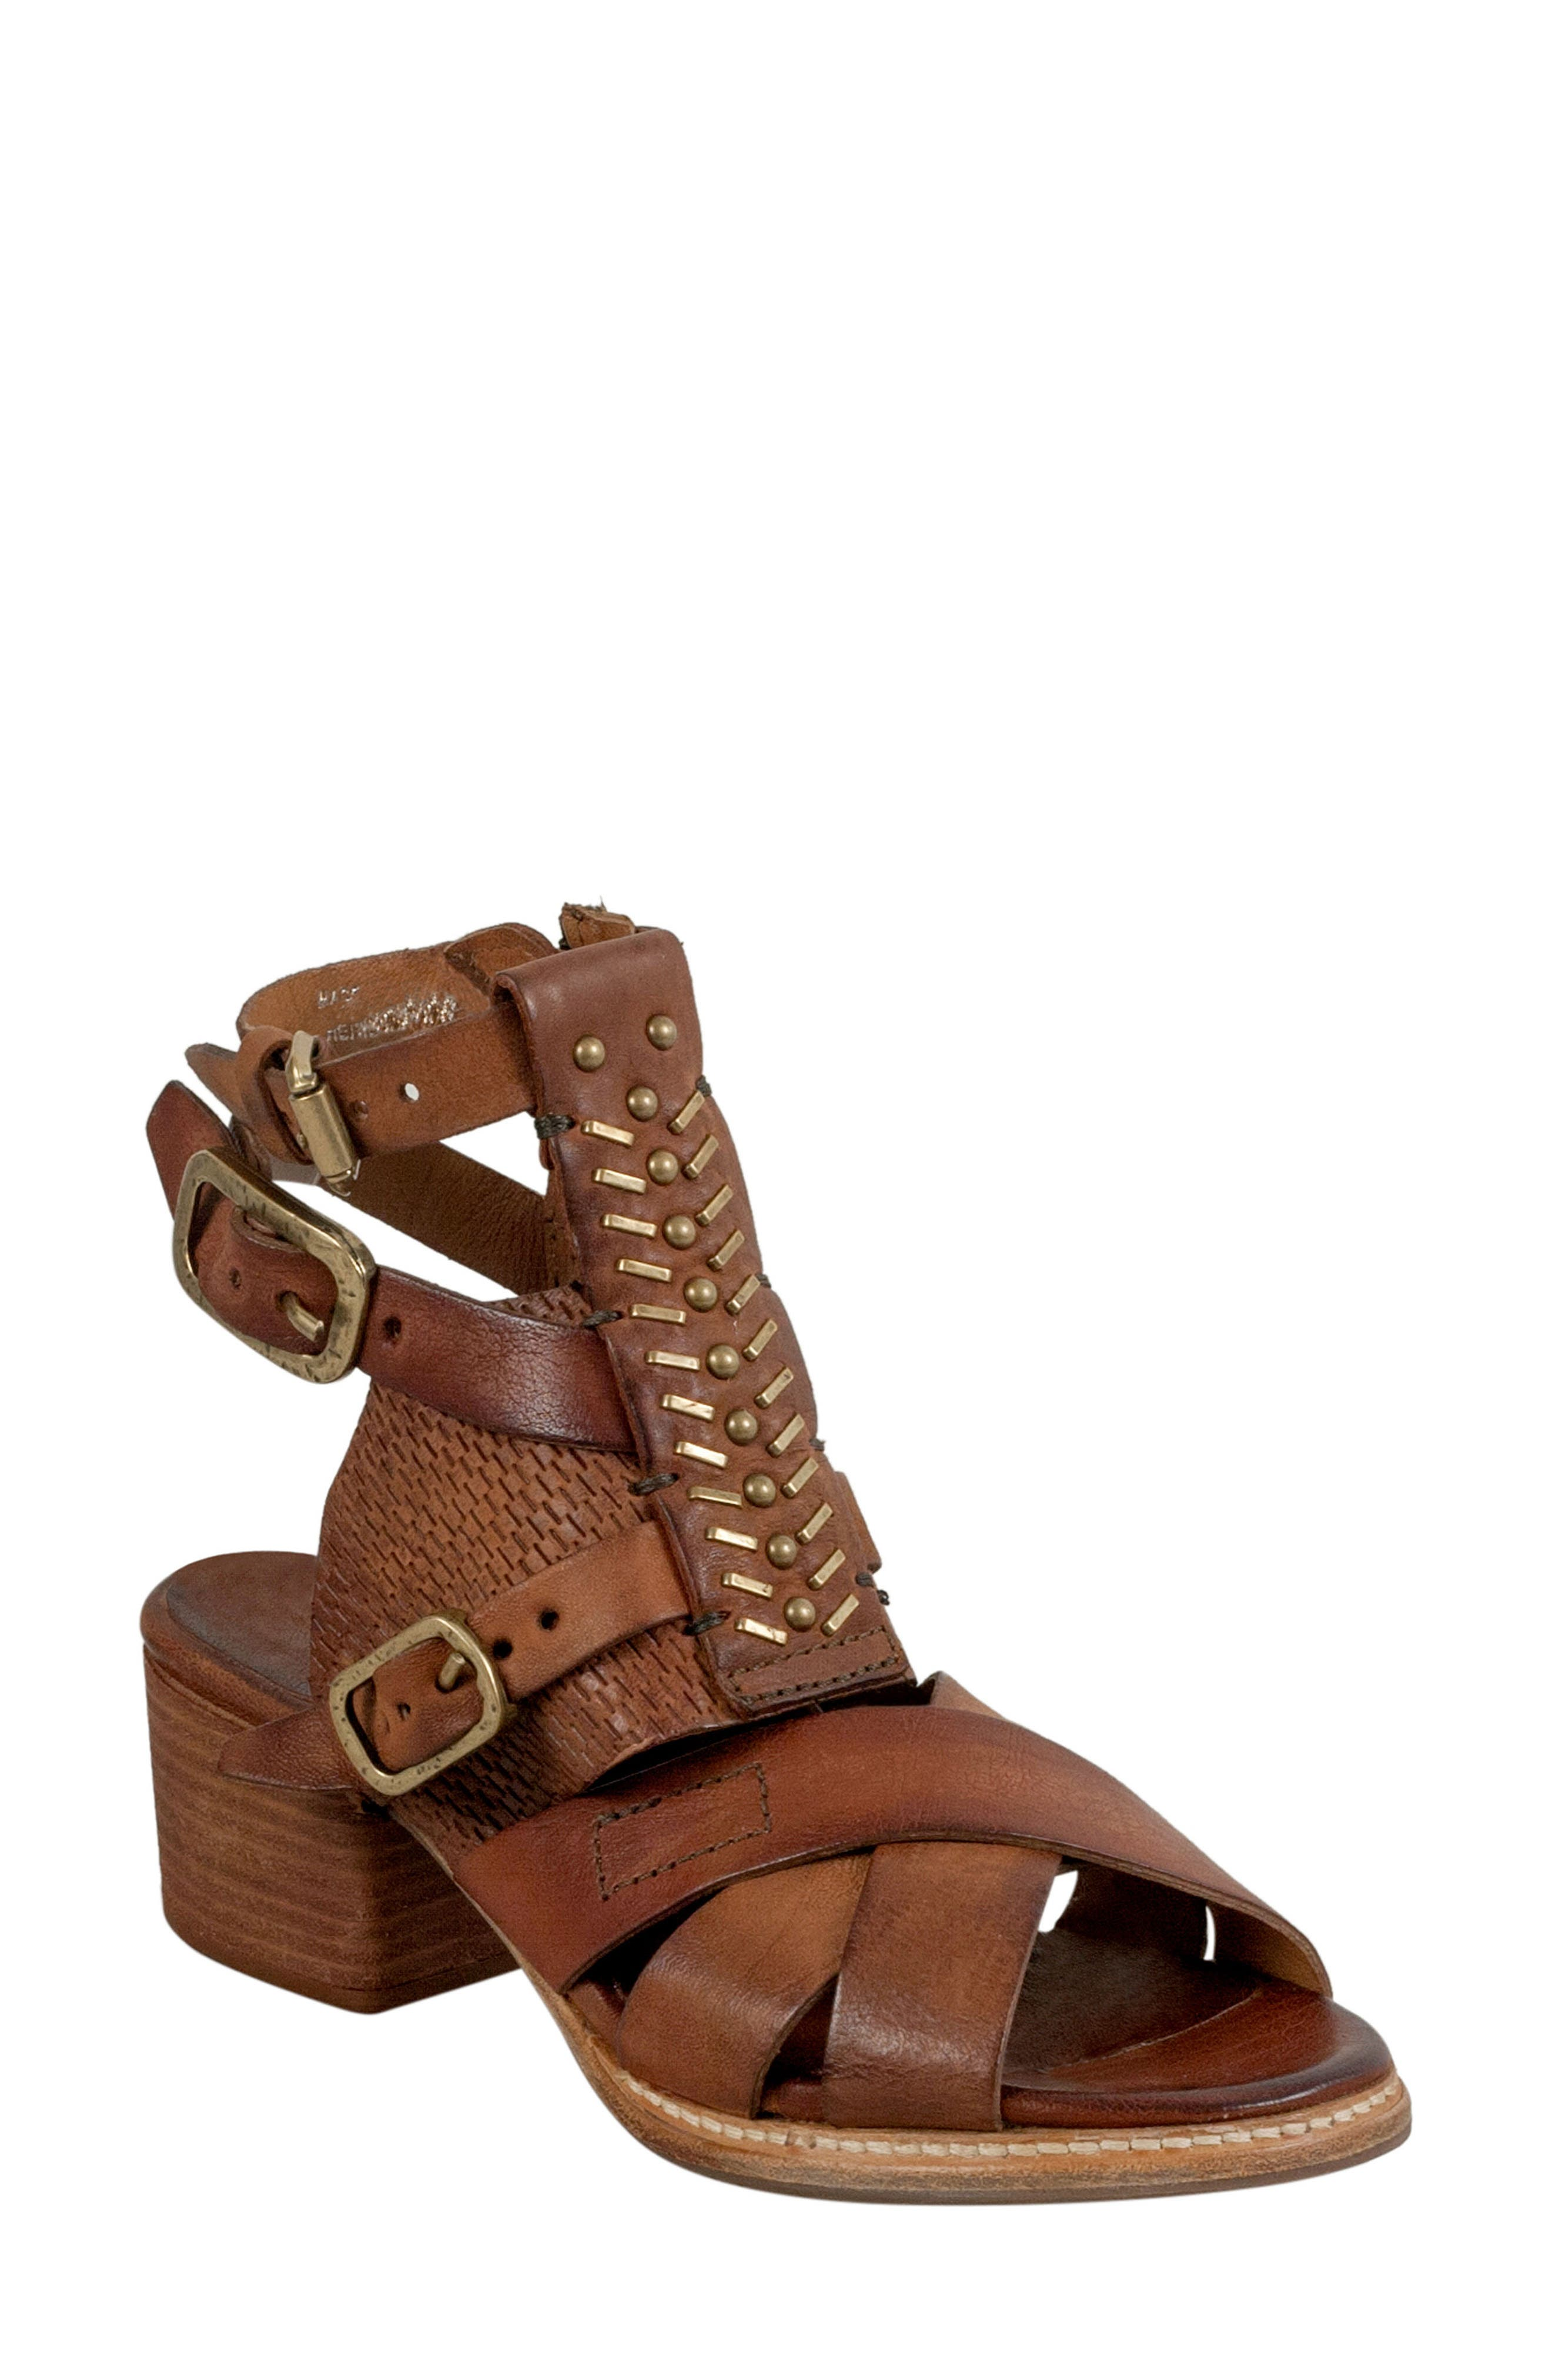 Pennie Gladiator Sandal,                             Main thumbnail 1, color,                             Cognac